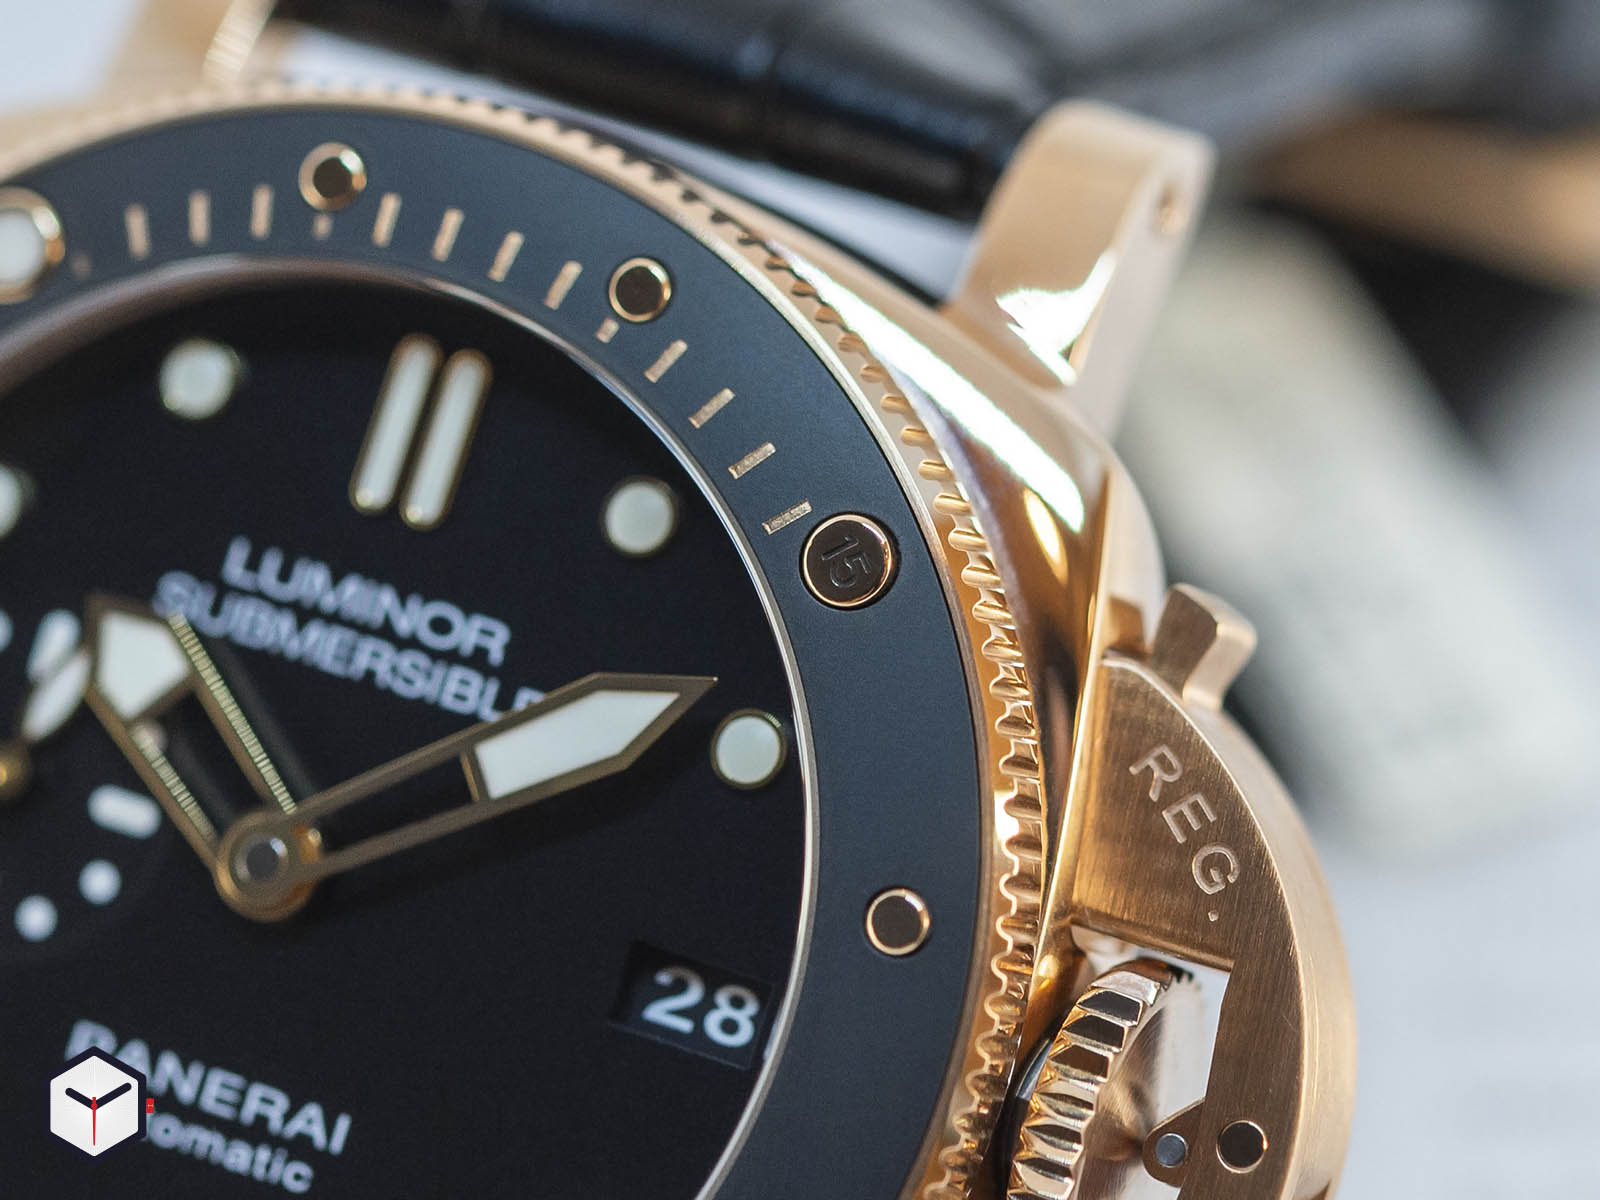 pam00684-officine-panerai-submersible-1950-3-days-automatic-oro-rosso-42mm-5.jpg